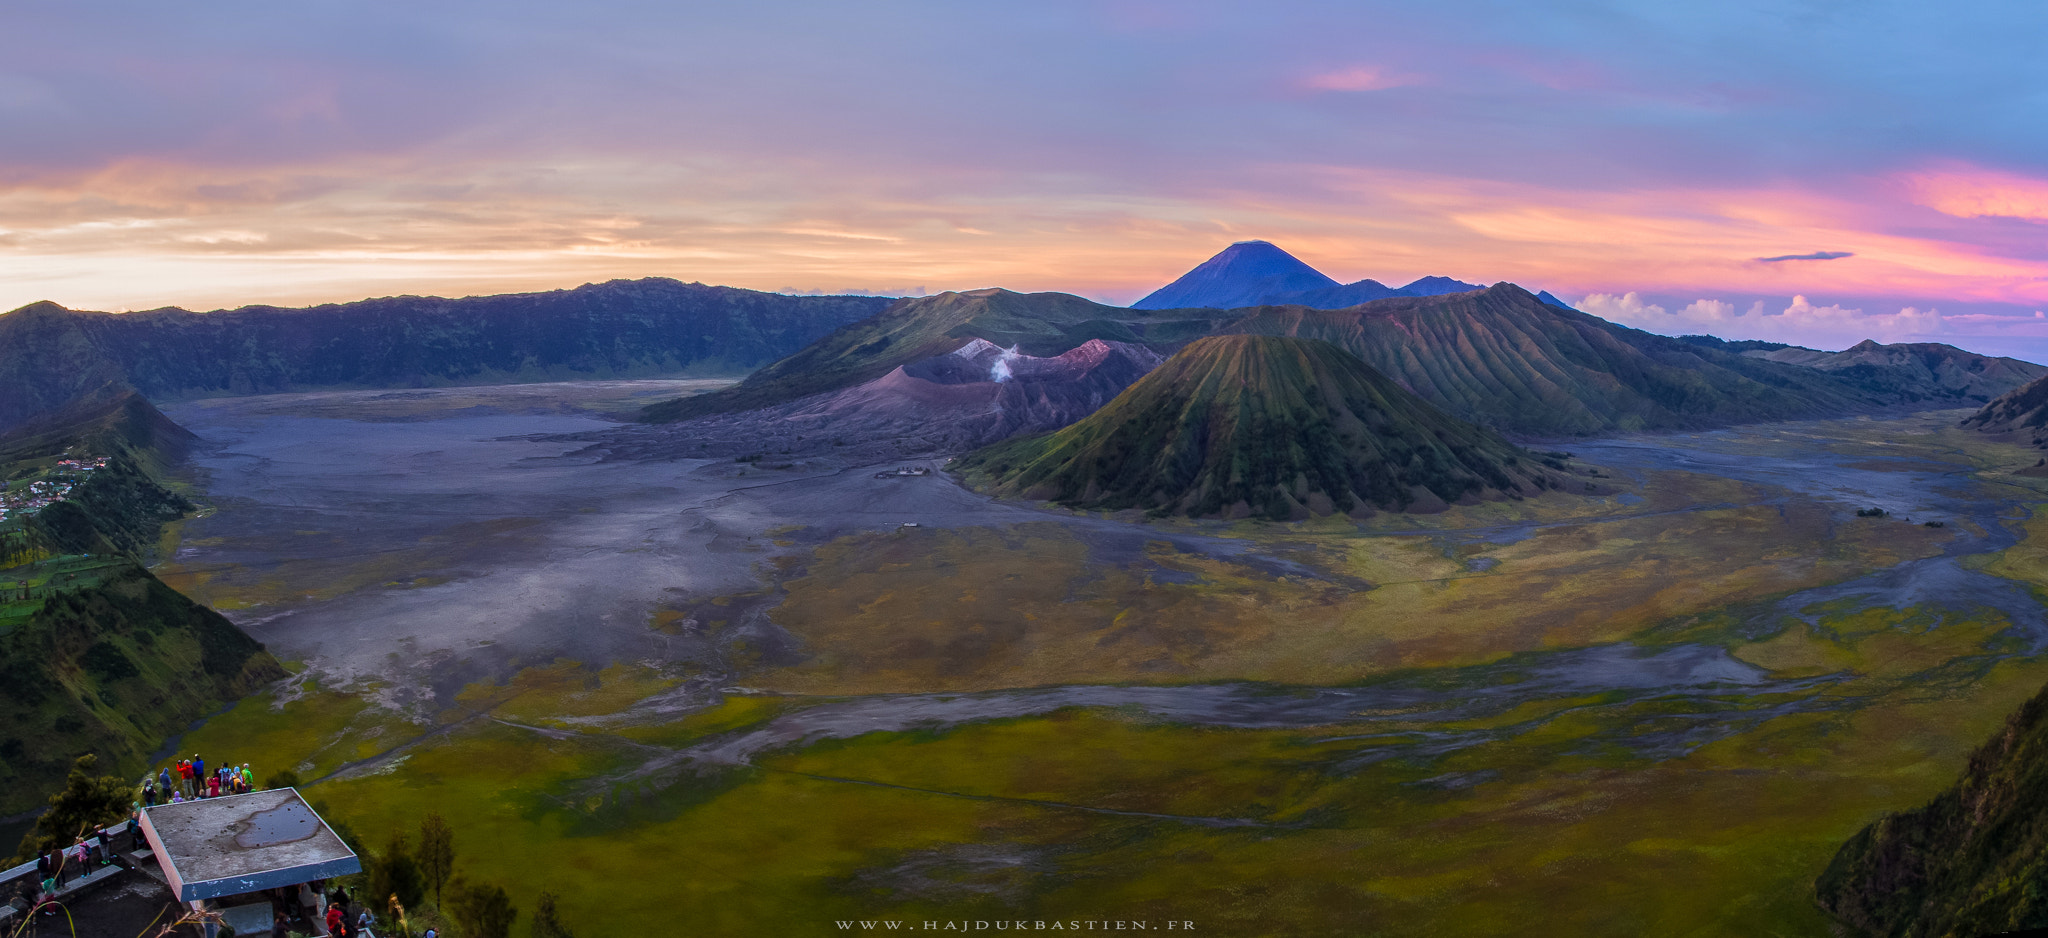 Photograph Sunrise on Bromo by Bastien HAJDUK on 500px